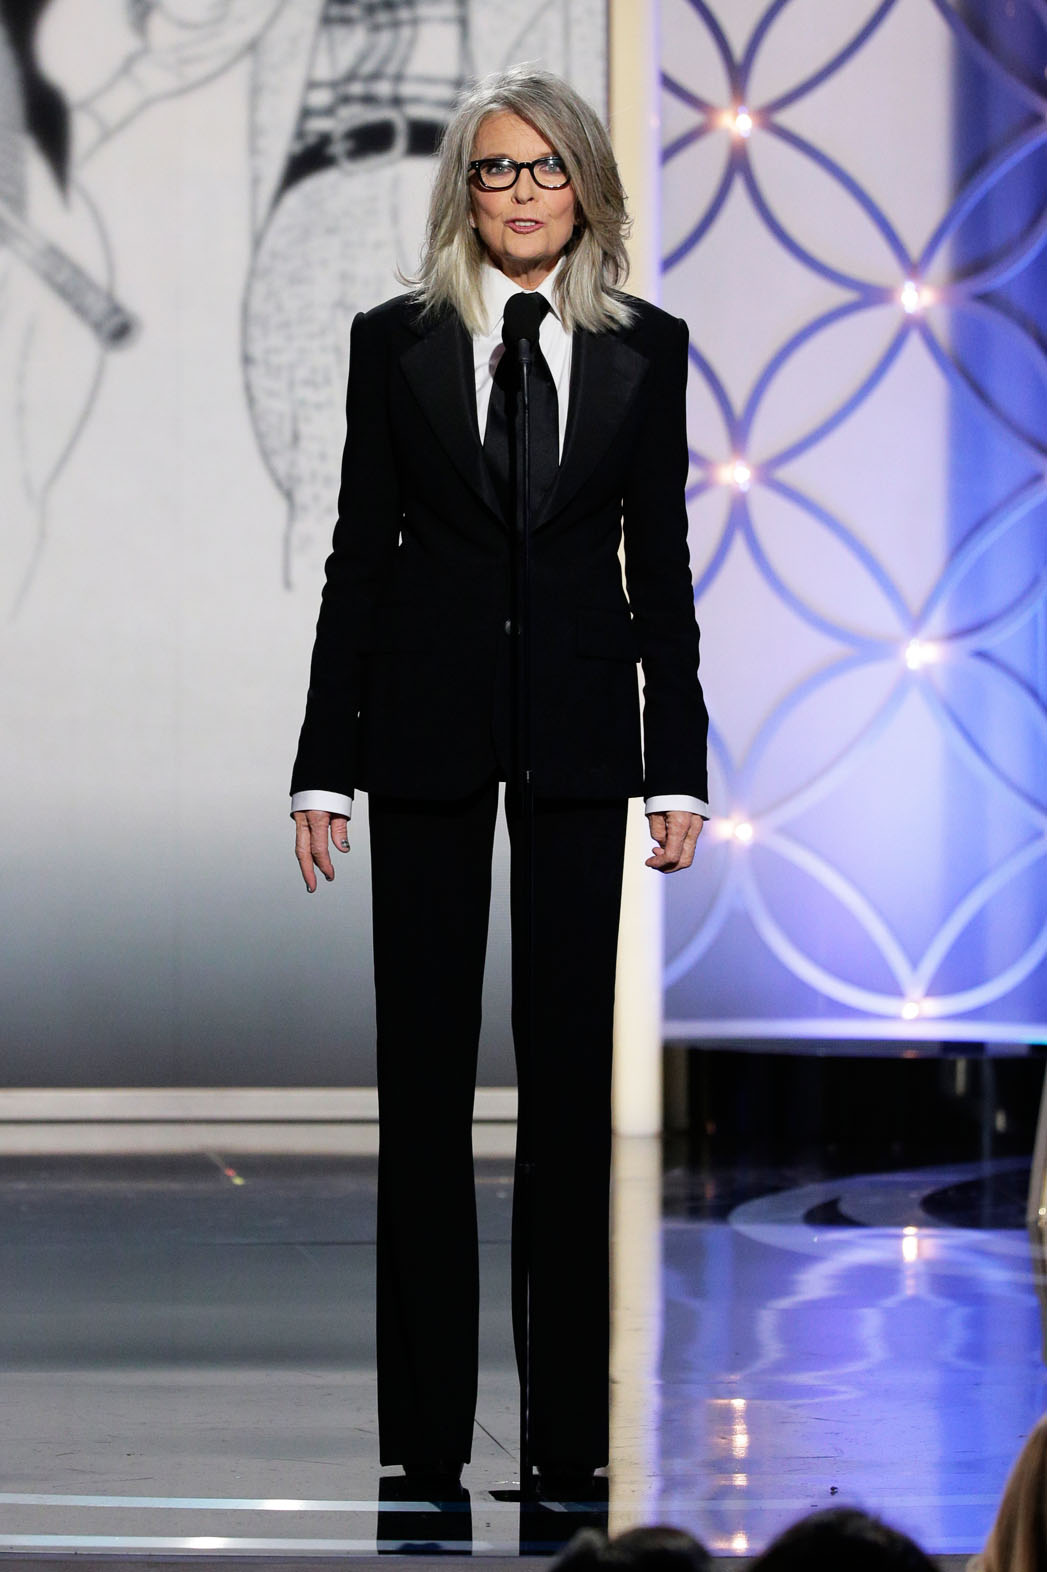 Diane Keaton in Ralph Lauren - Photo by Paul Drinkwater/NBC